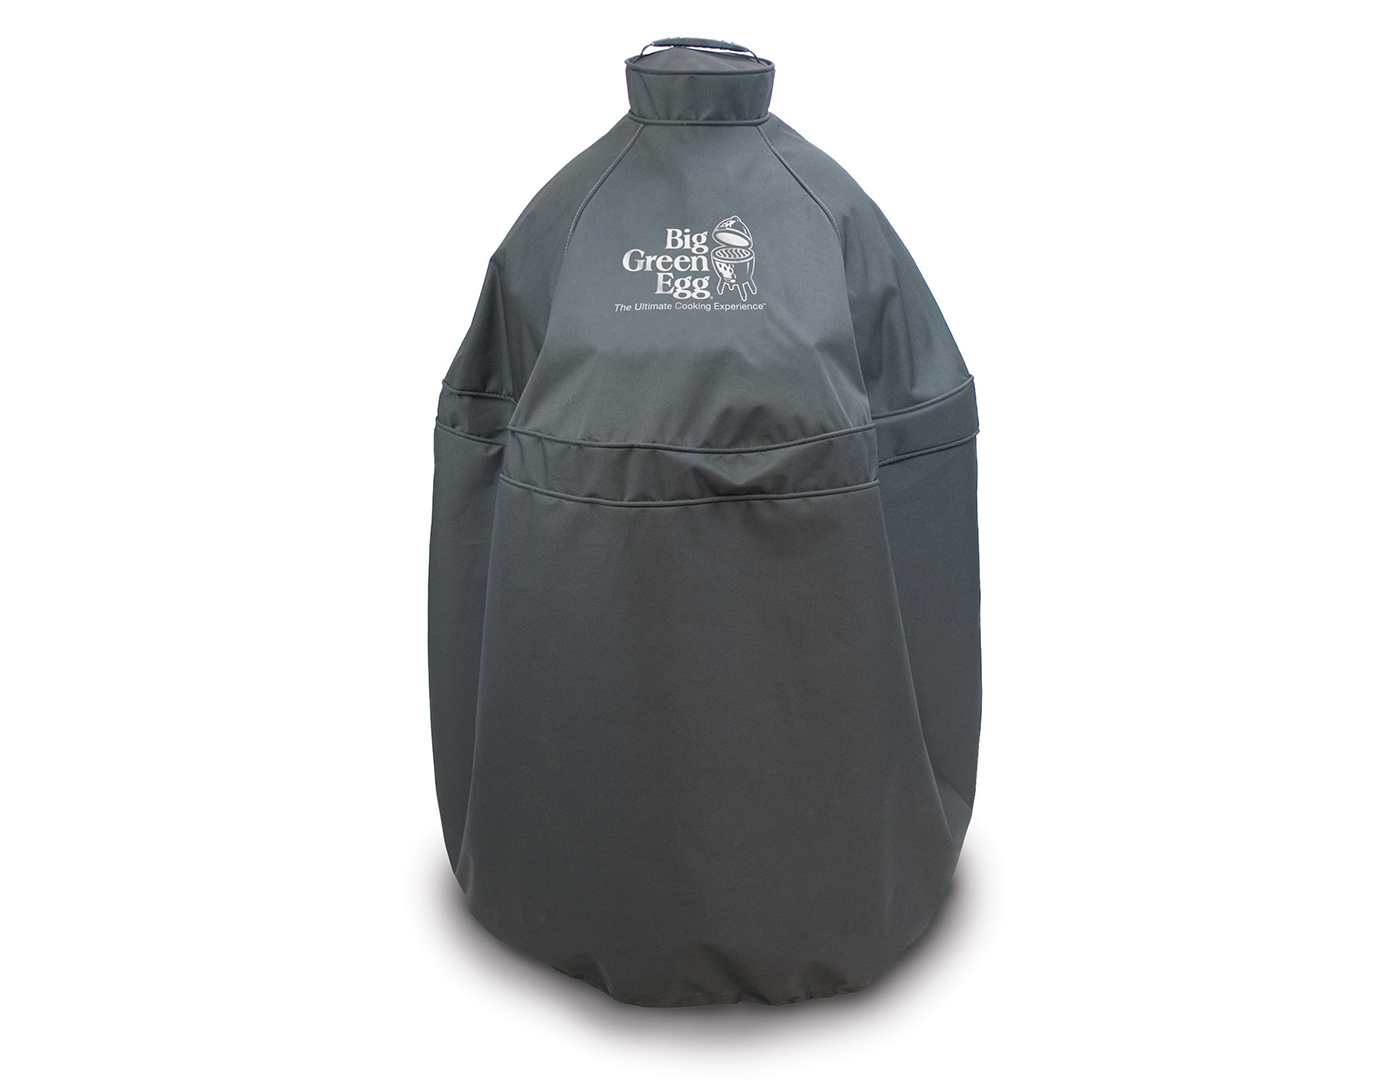 Big Green Egg Black Cover for Medium Egg in Nest